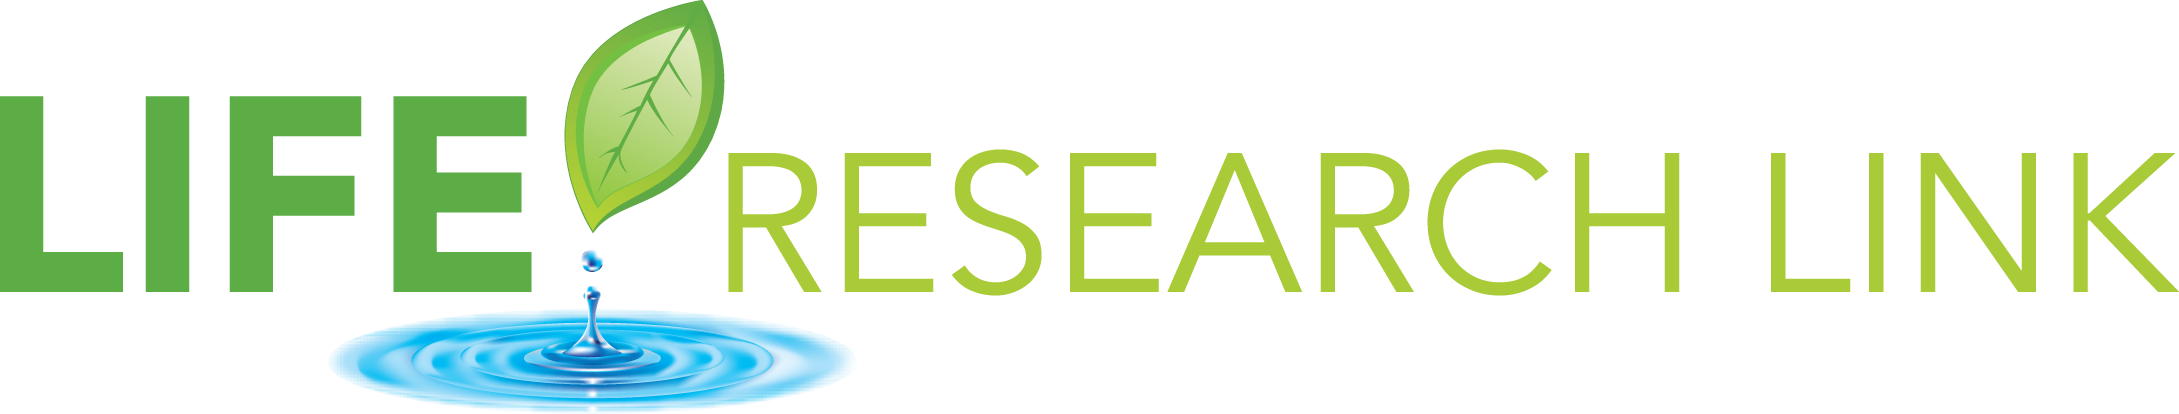 liferesearchlinklogo